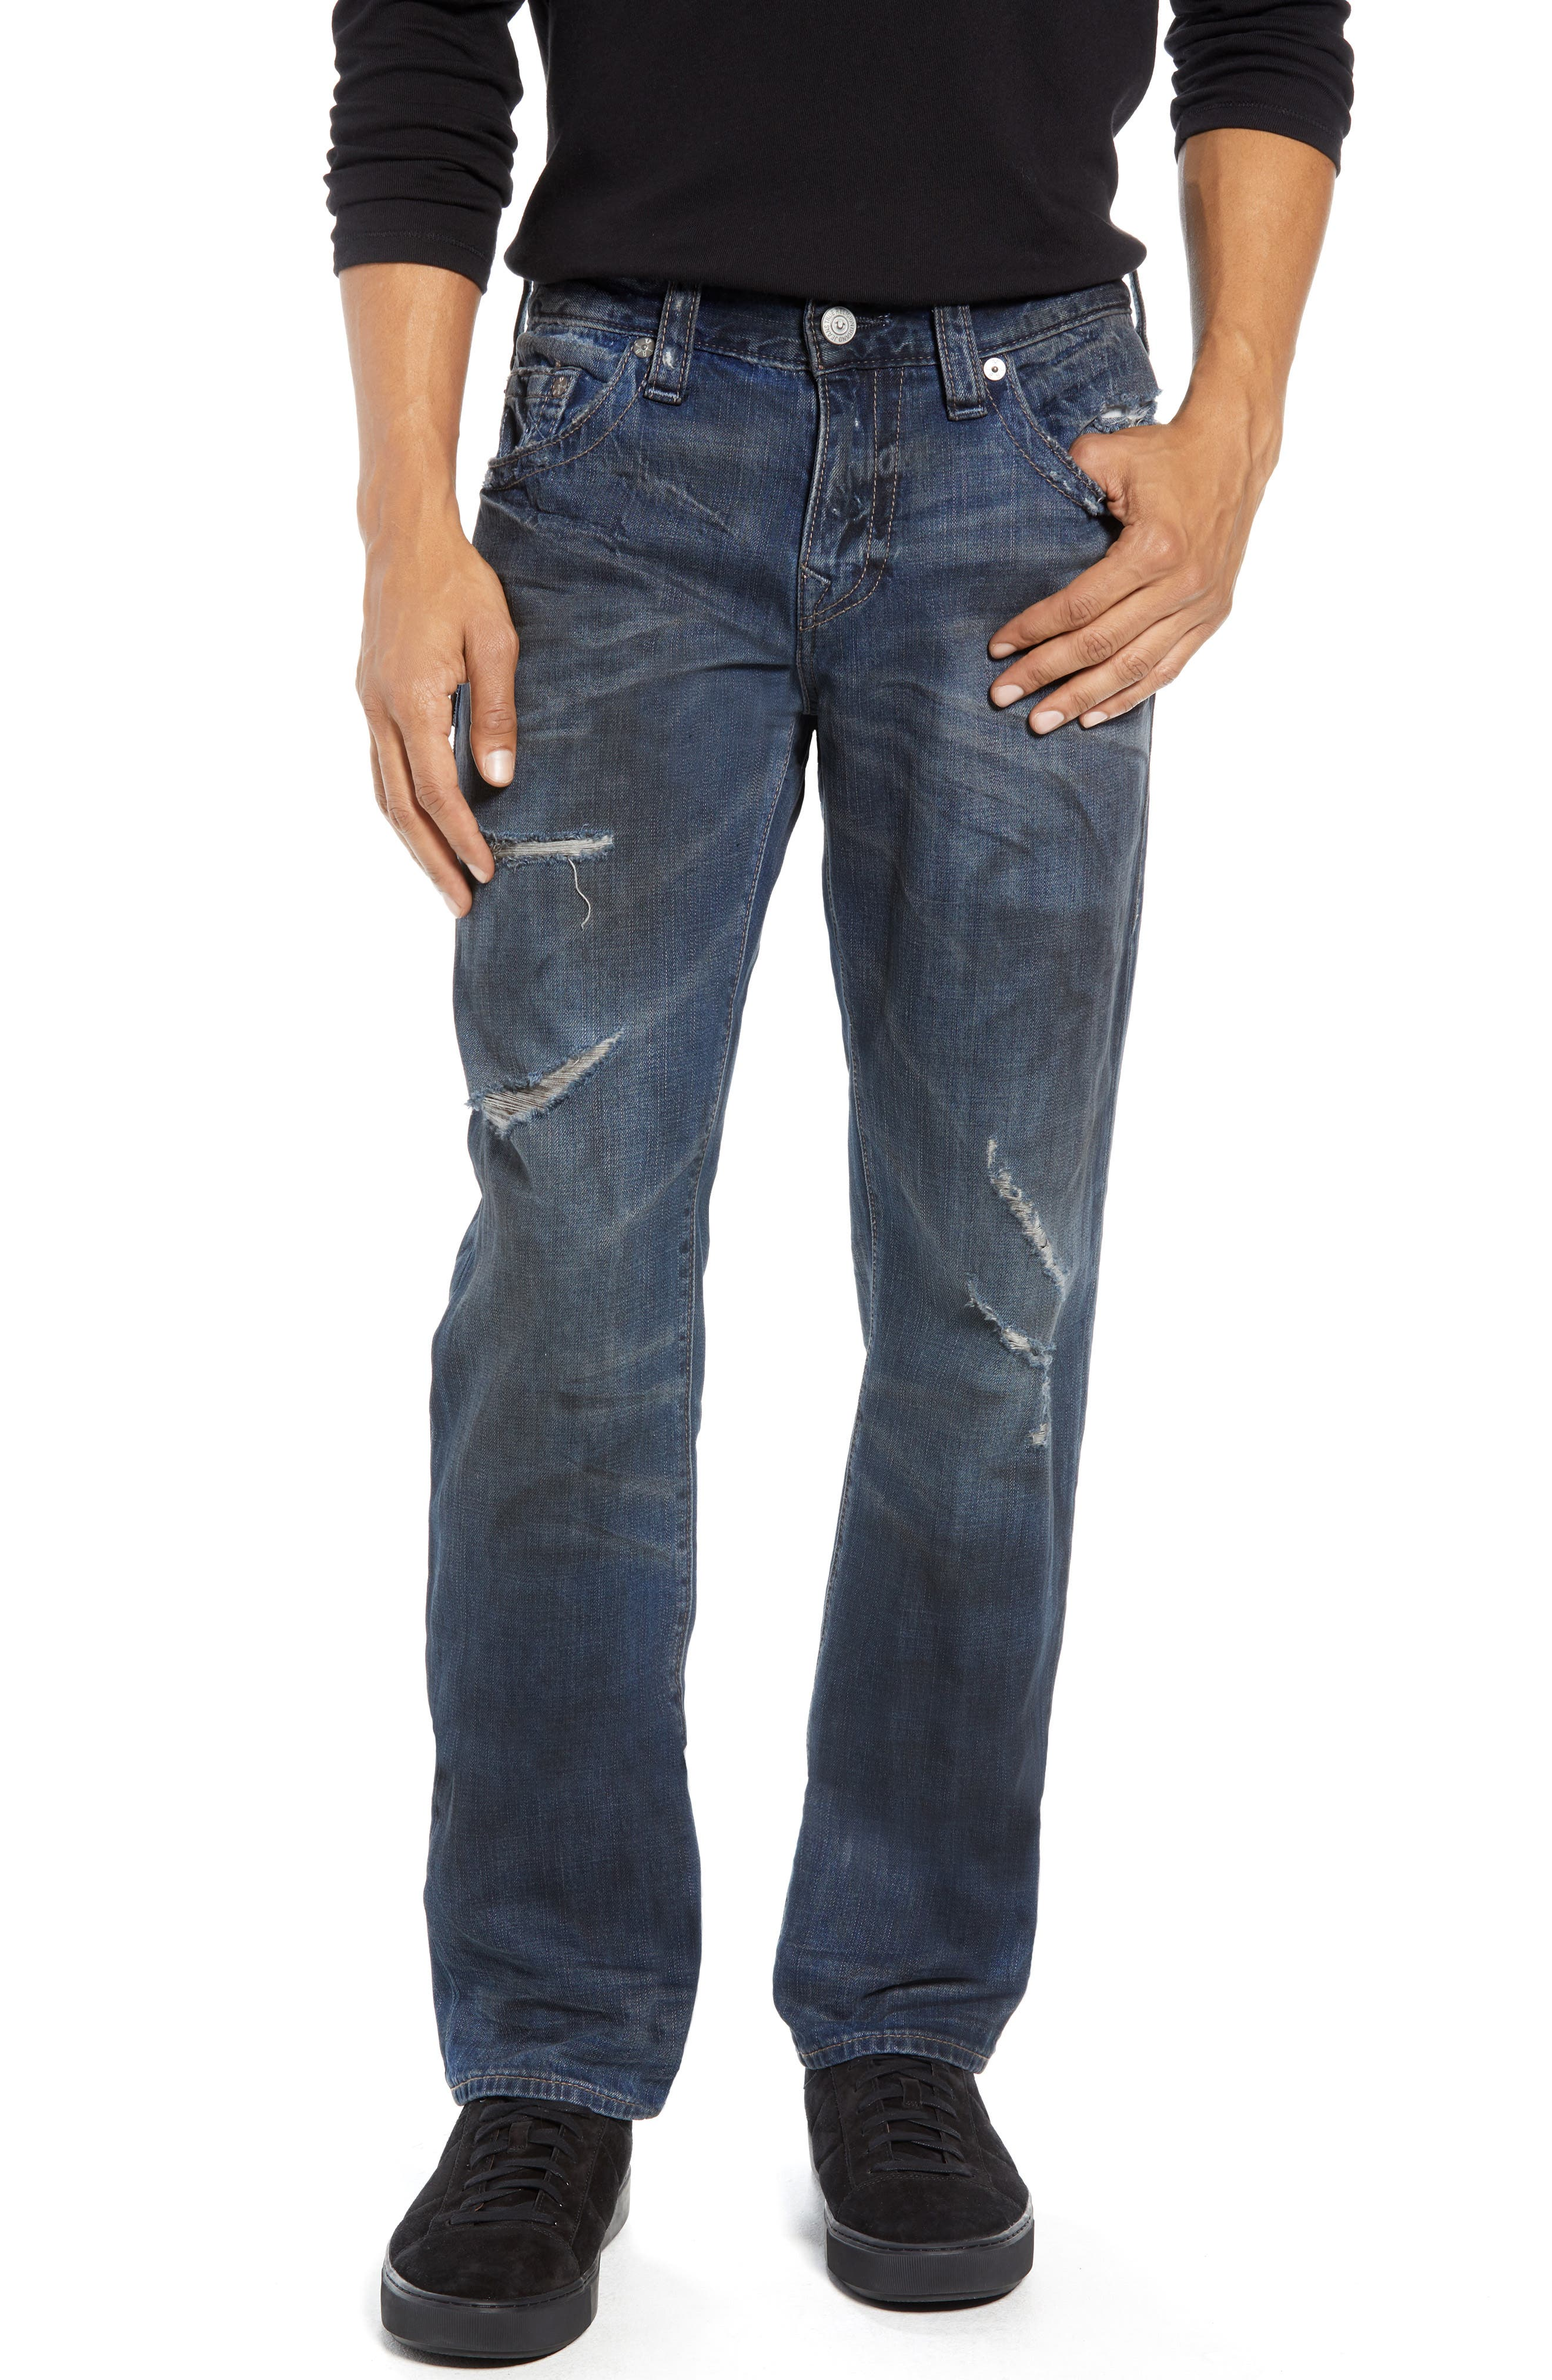 Rocco Distressed Skinny Fit Jeans,                         Main,                         color, MIDNIGHT STORM